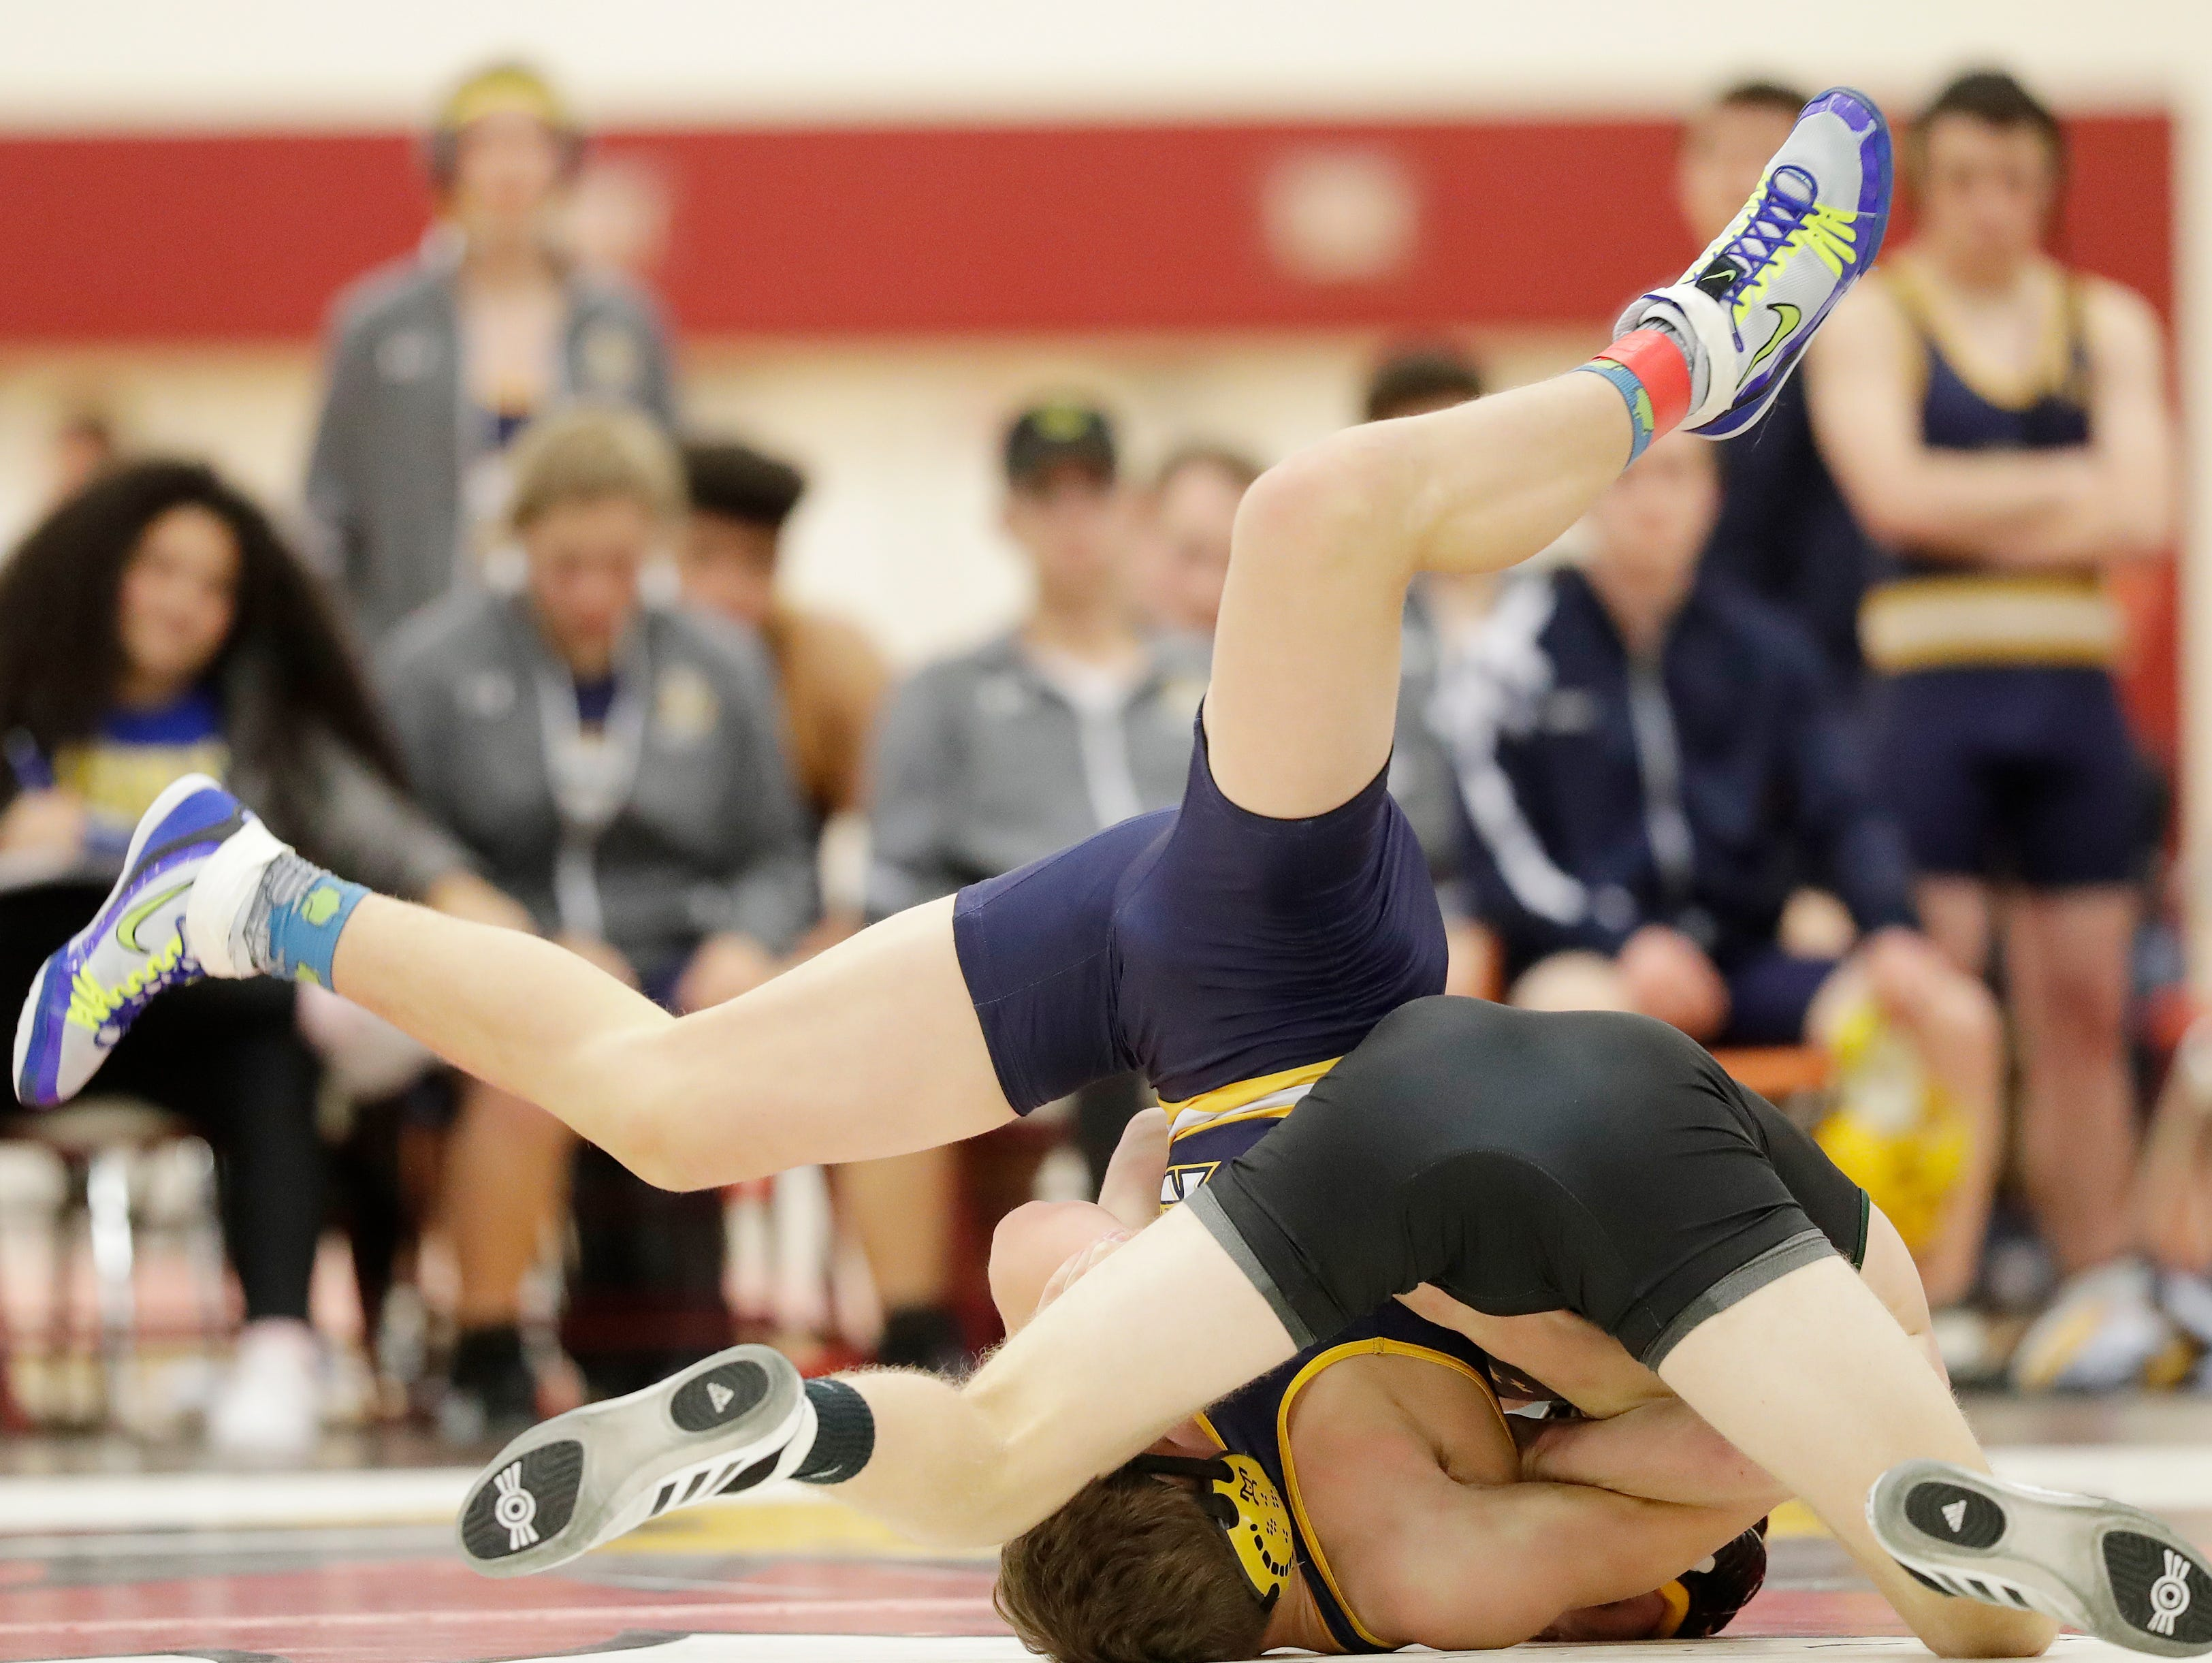 Ashwaubenon and Sheboygan North wrestlers compete in a 152-pound bout at De Pere high school on Thursday, December 13, 2018 in De Pere, Wis.